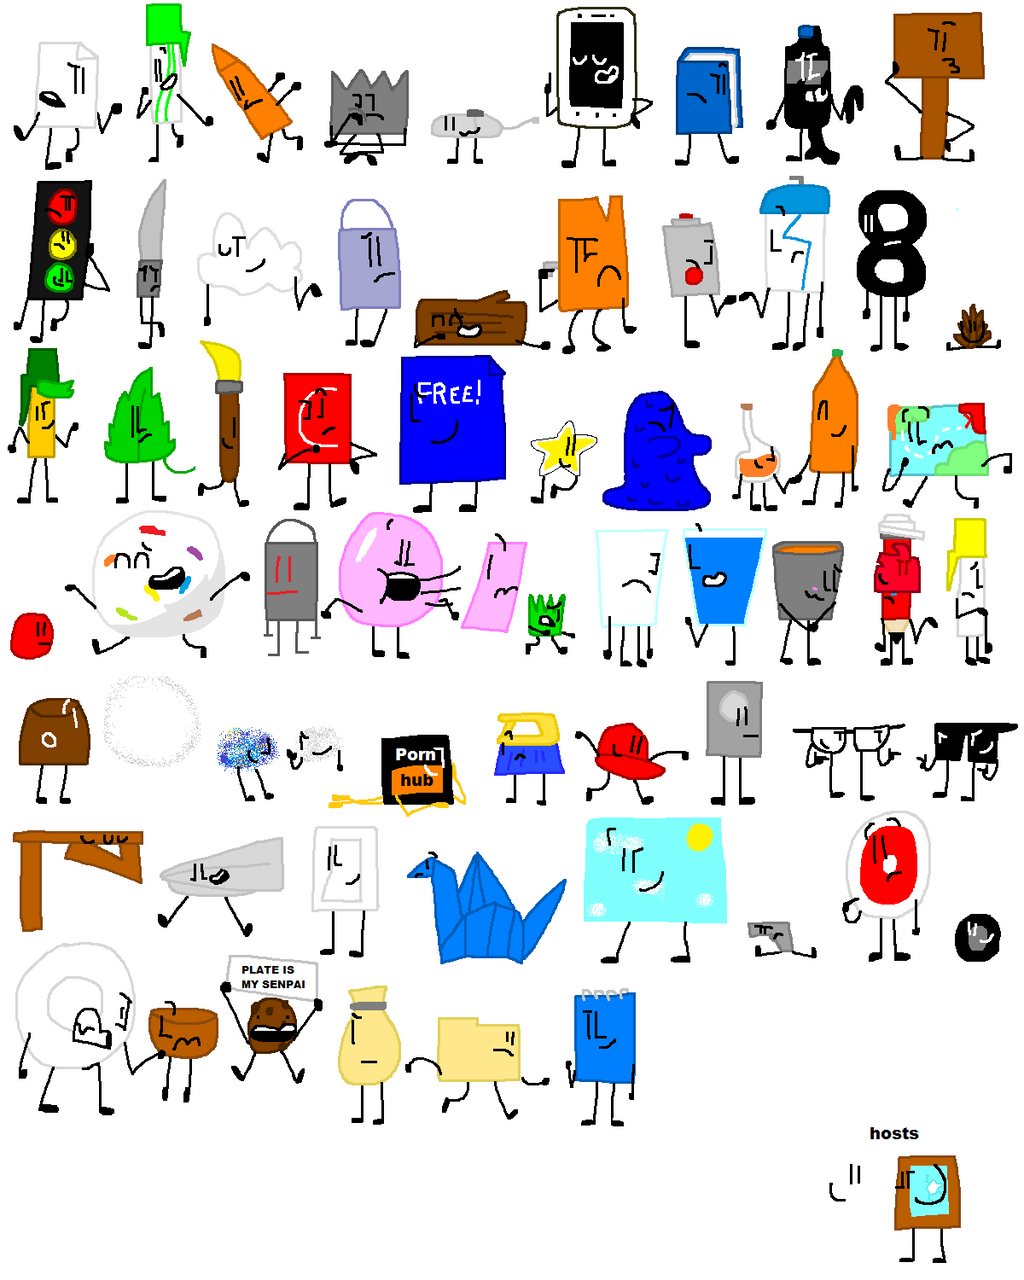 64 Objects For Nintendo 64 Characters By VakieThePudding